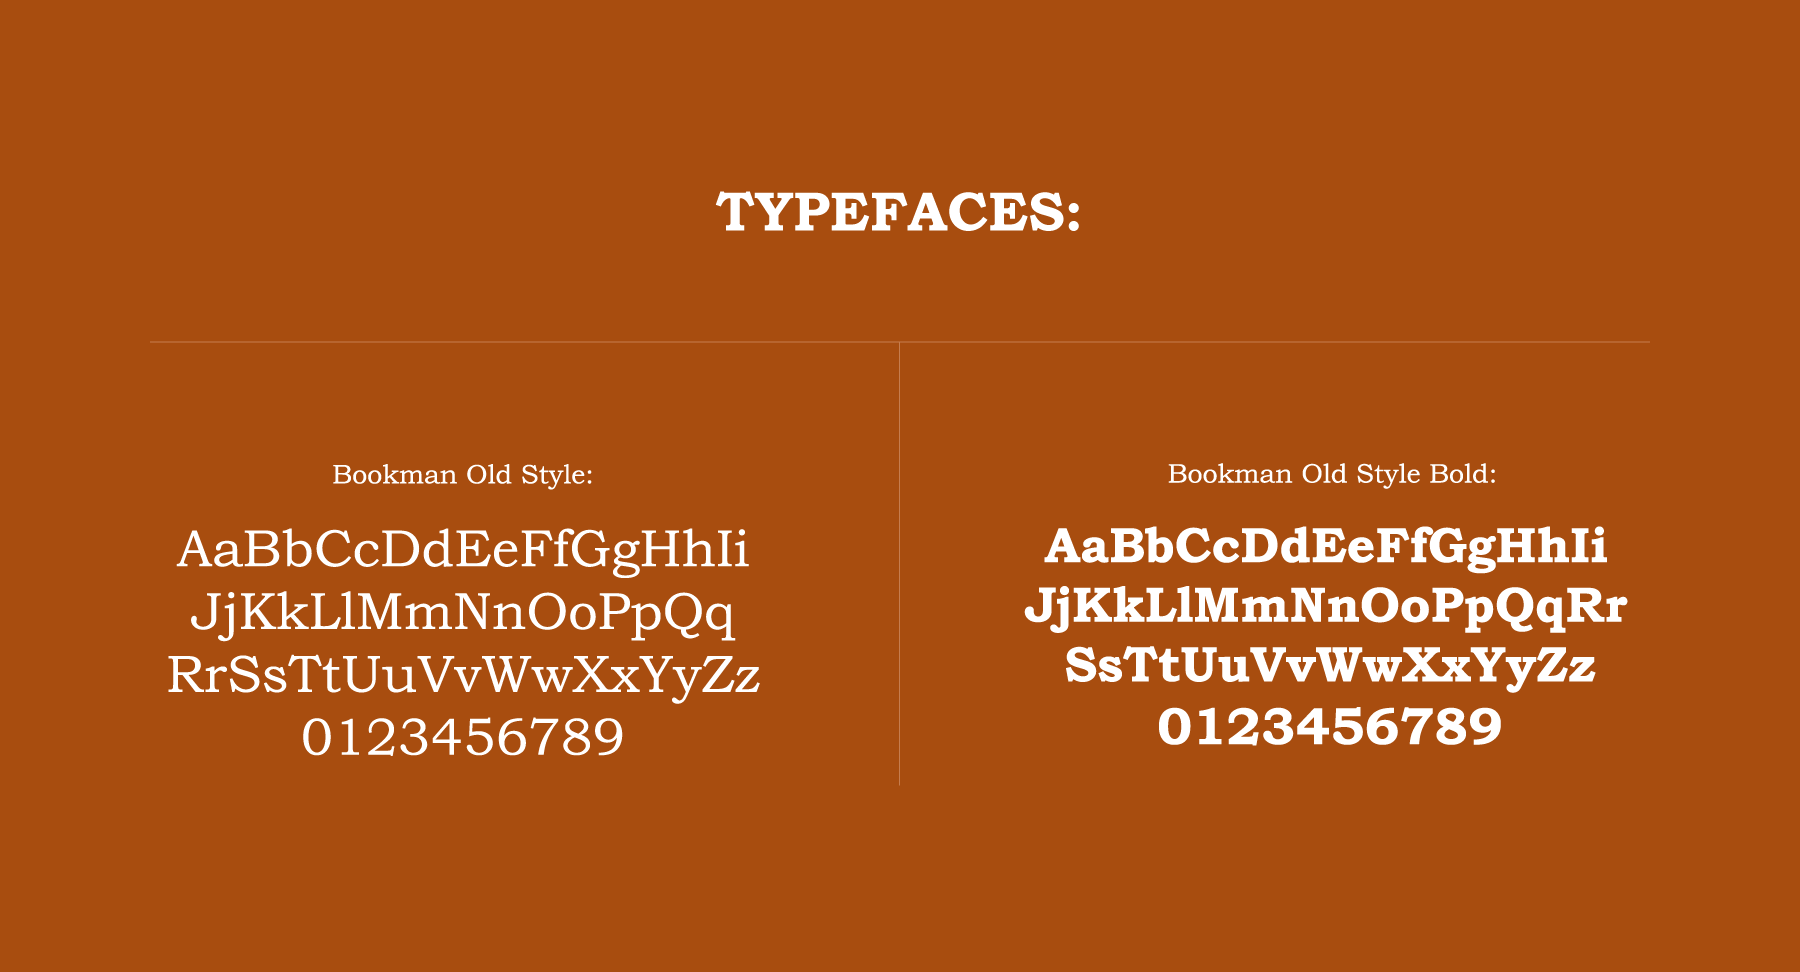 adamson-farm-typefaces